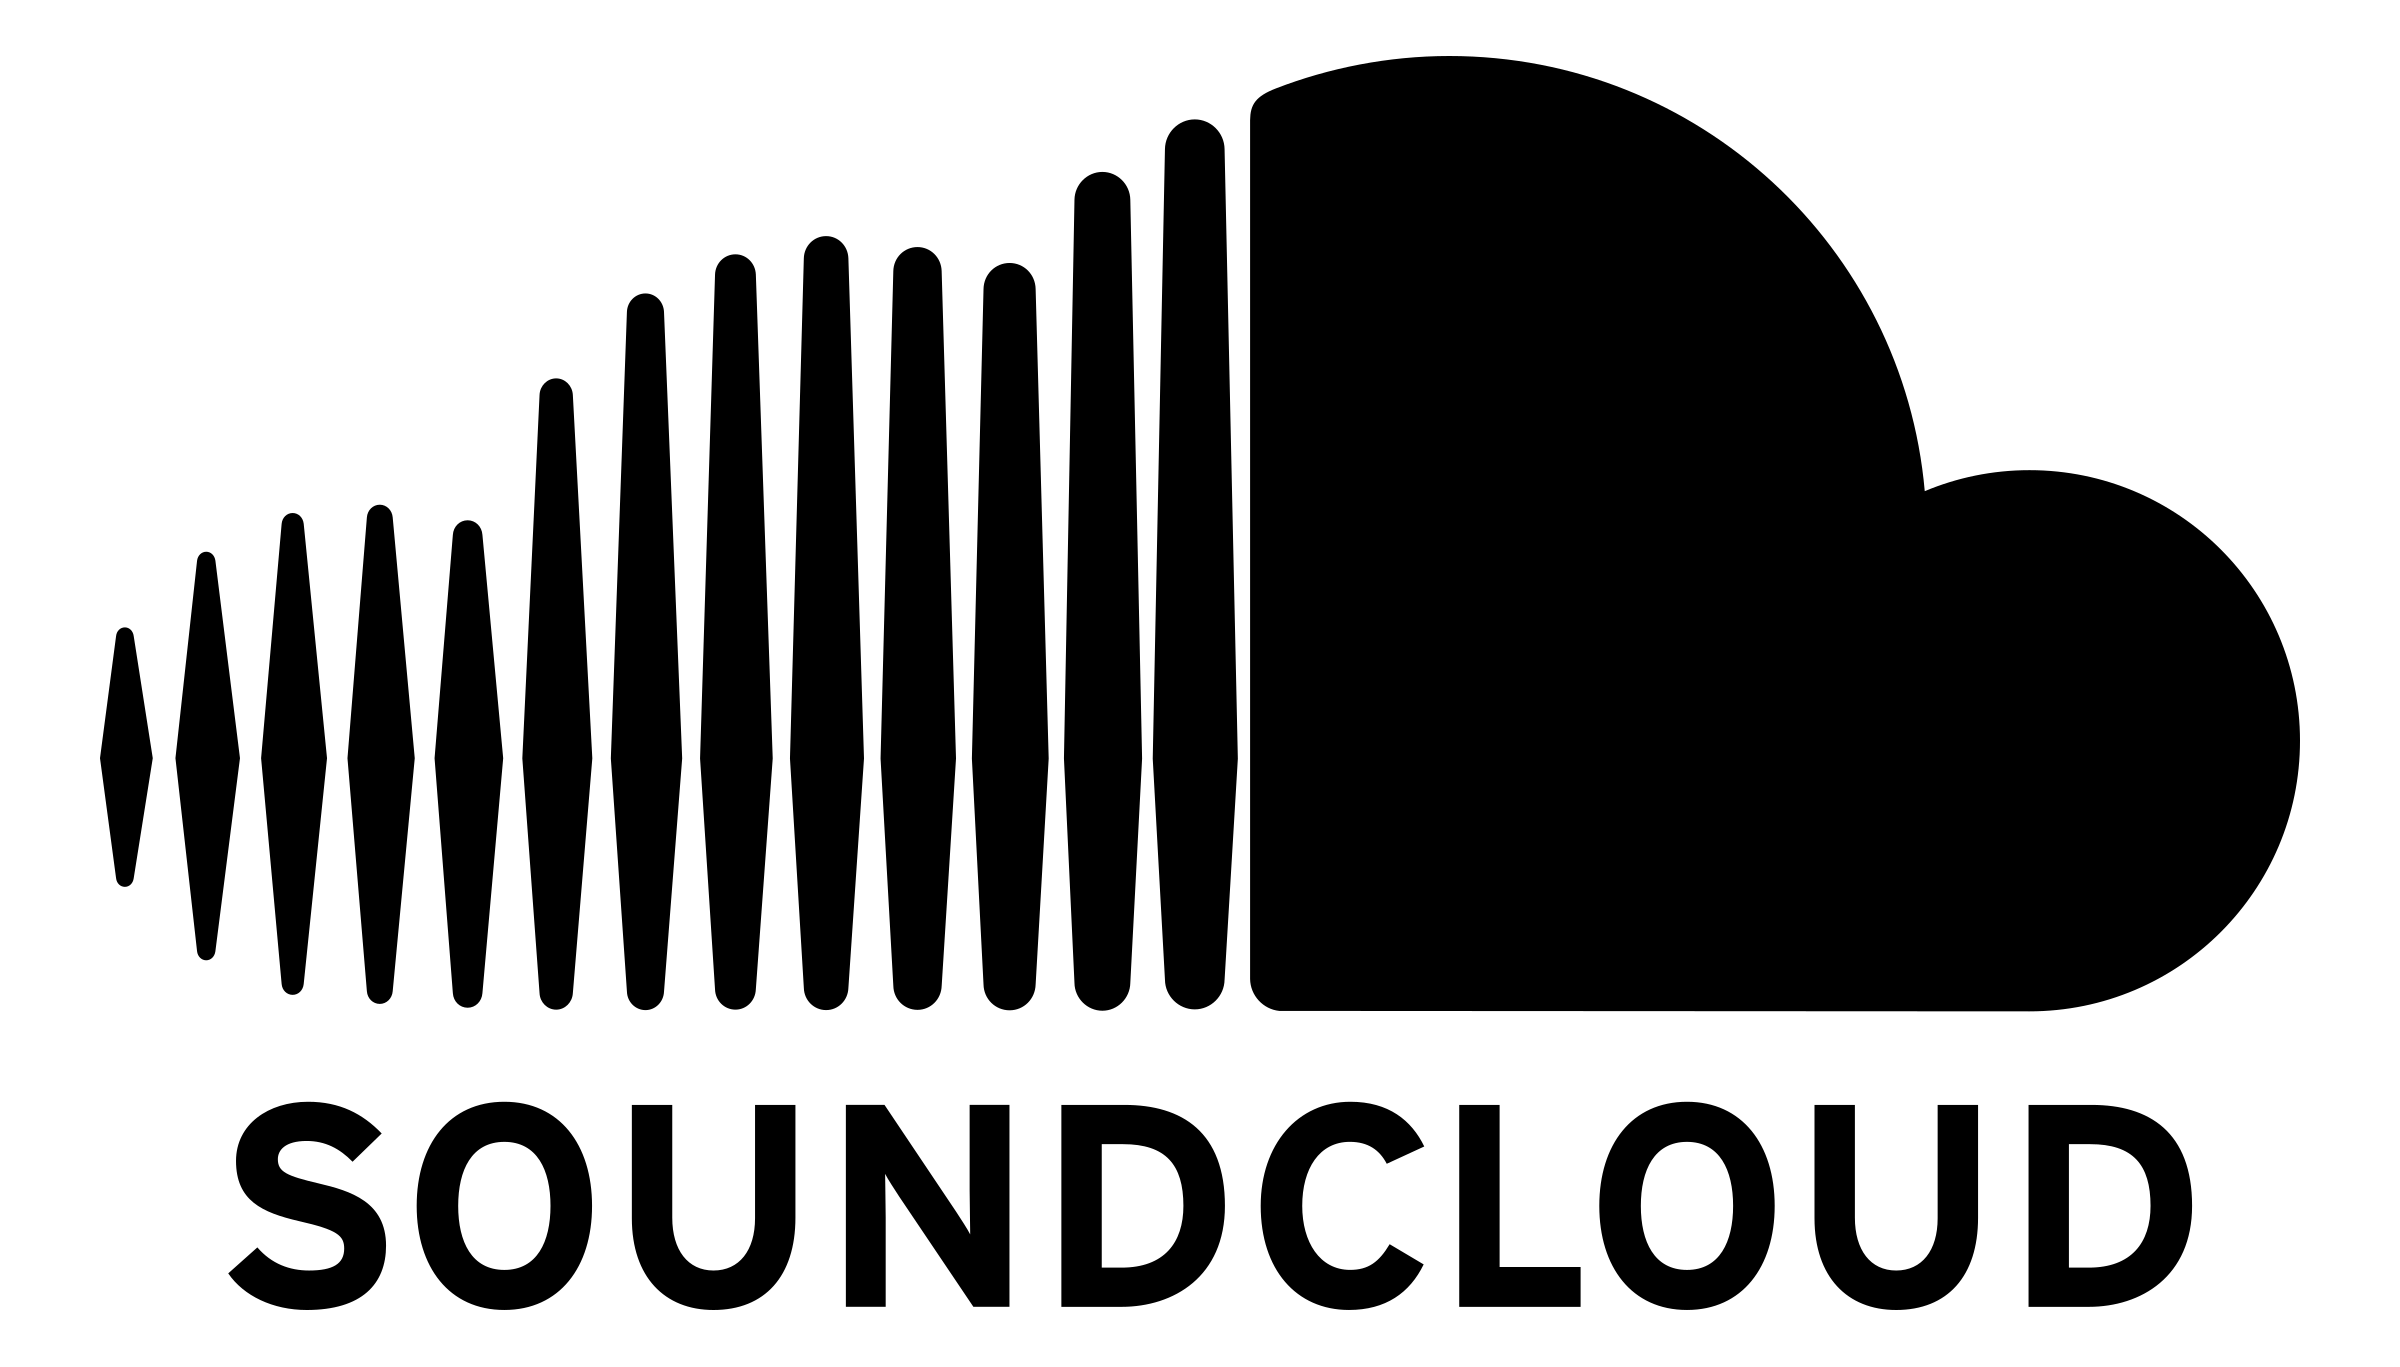 SoundCloud - Share Your Sounds